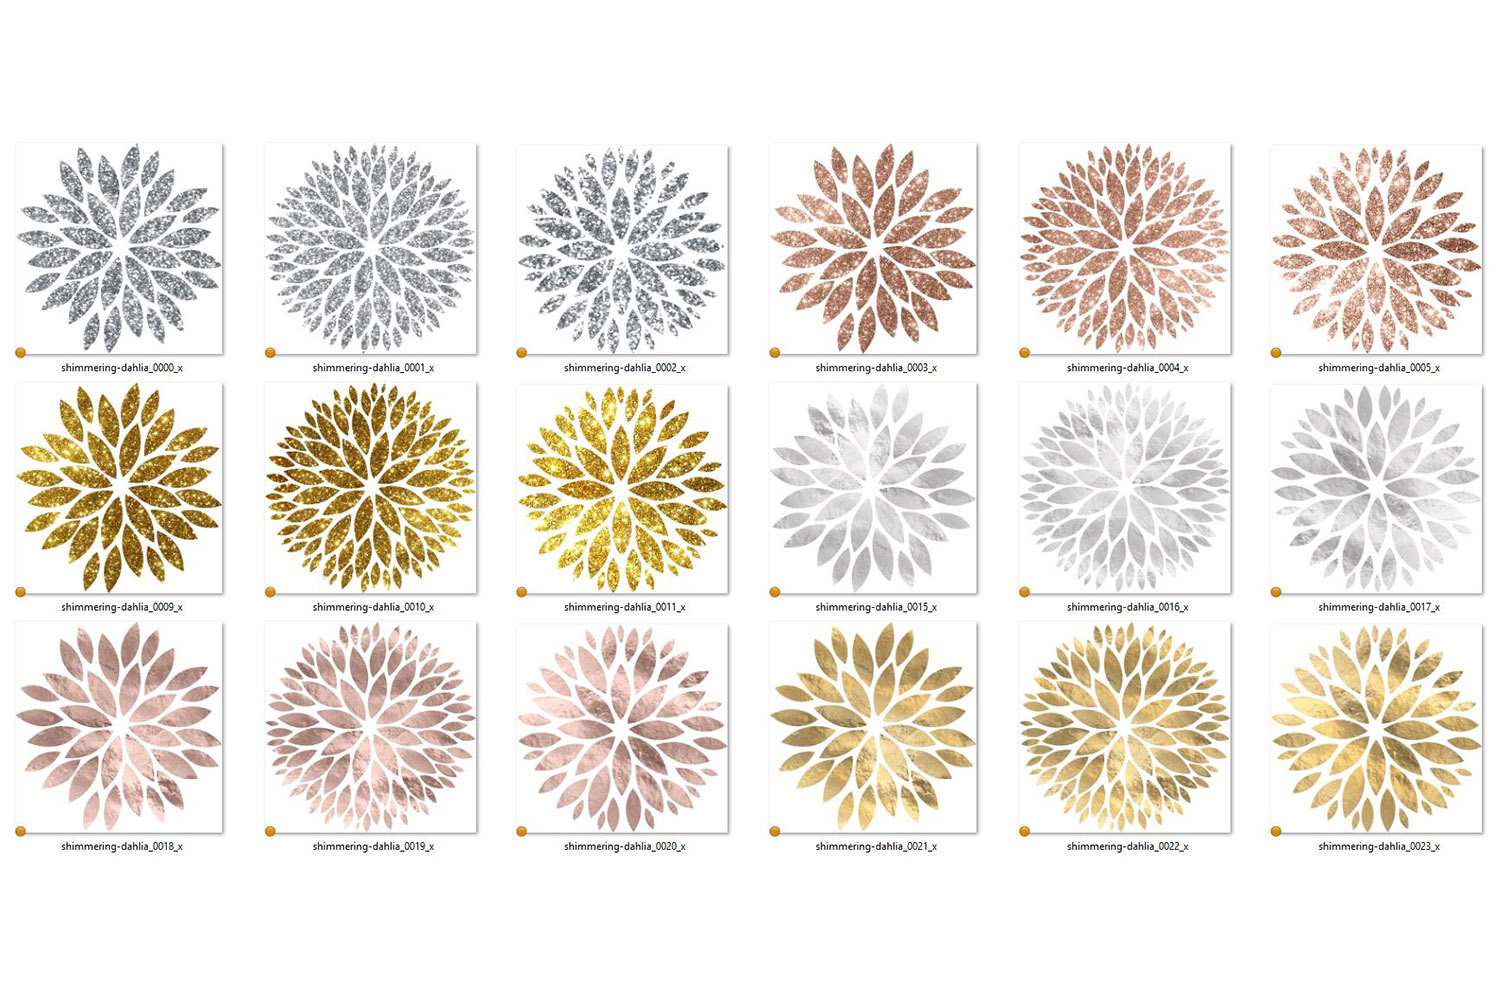 Shimmering Dahlia Clipart example image 3